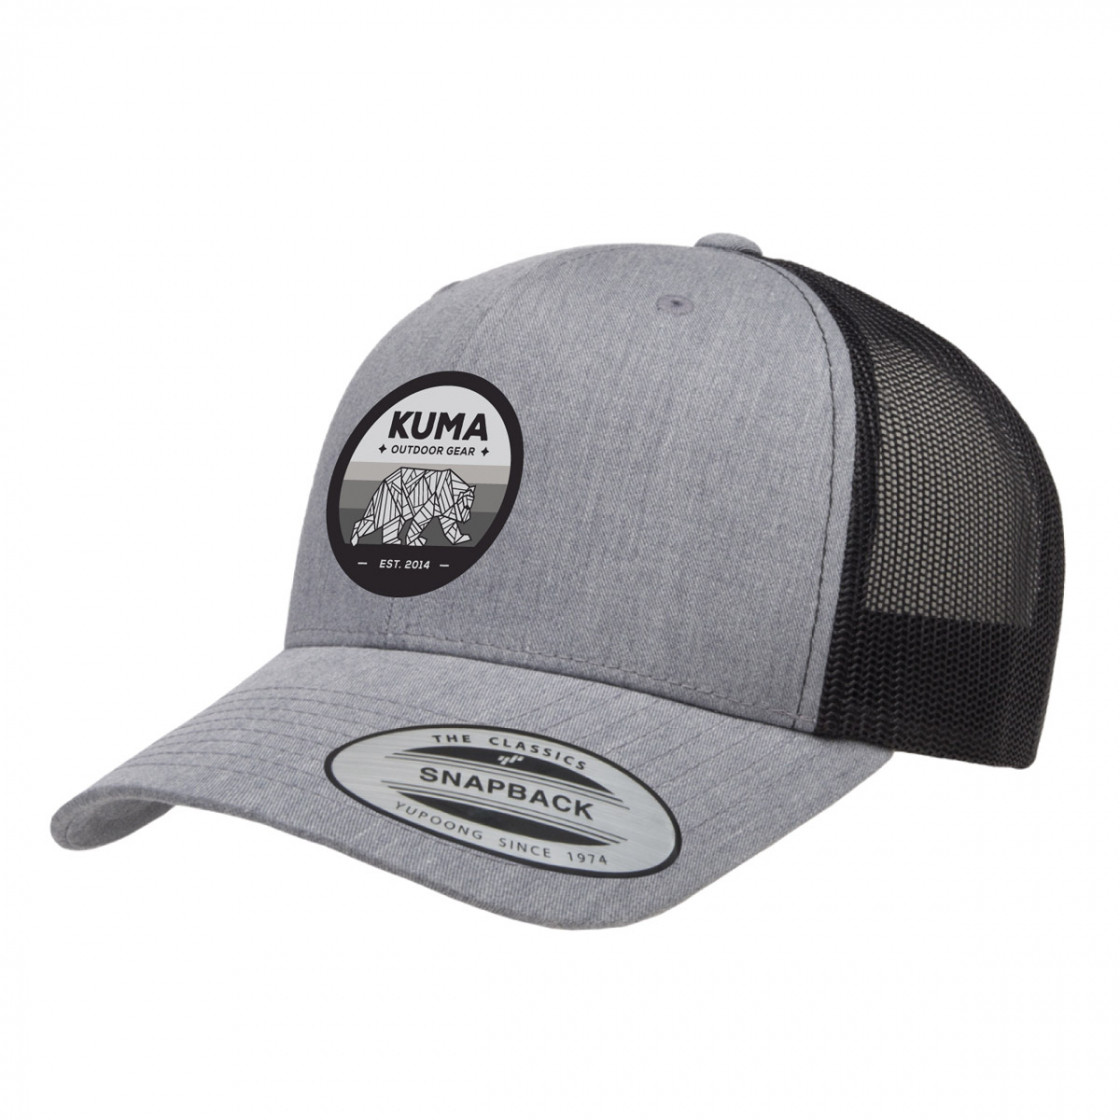 Backtrack Hat Products Kuma Outdoor Gear Experience